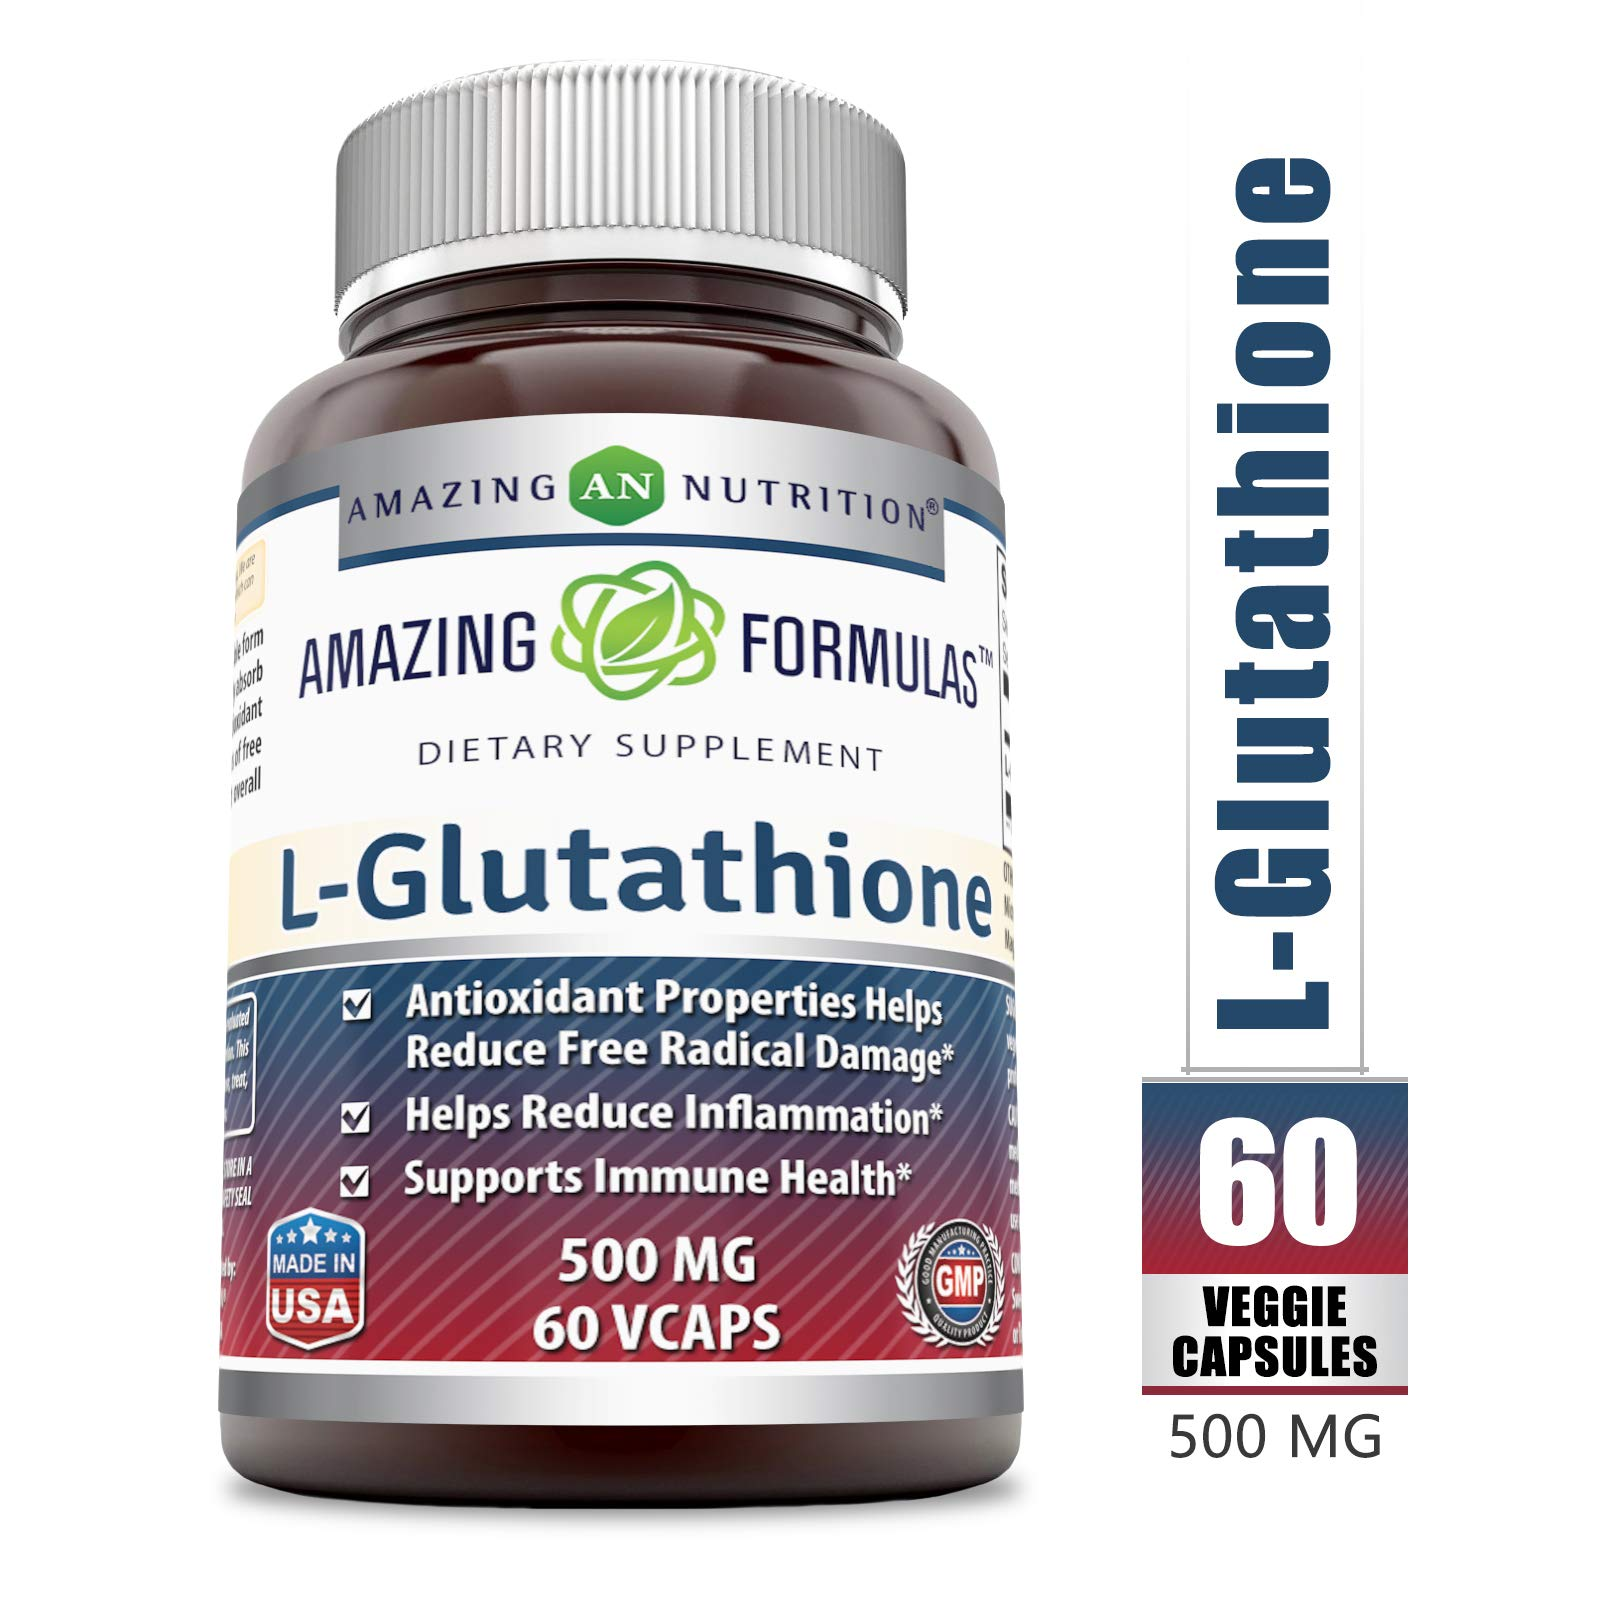 Amazing Formulas Reduced L-Glutathione - 500 Mg, 60 Veggie Capsules - Antioxidant Properties Helps Reduce Free Radical Damage - Helps Reduce Inflammation - Supports Immune Health.